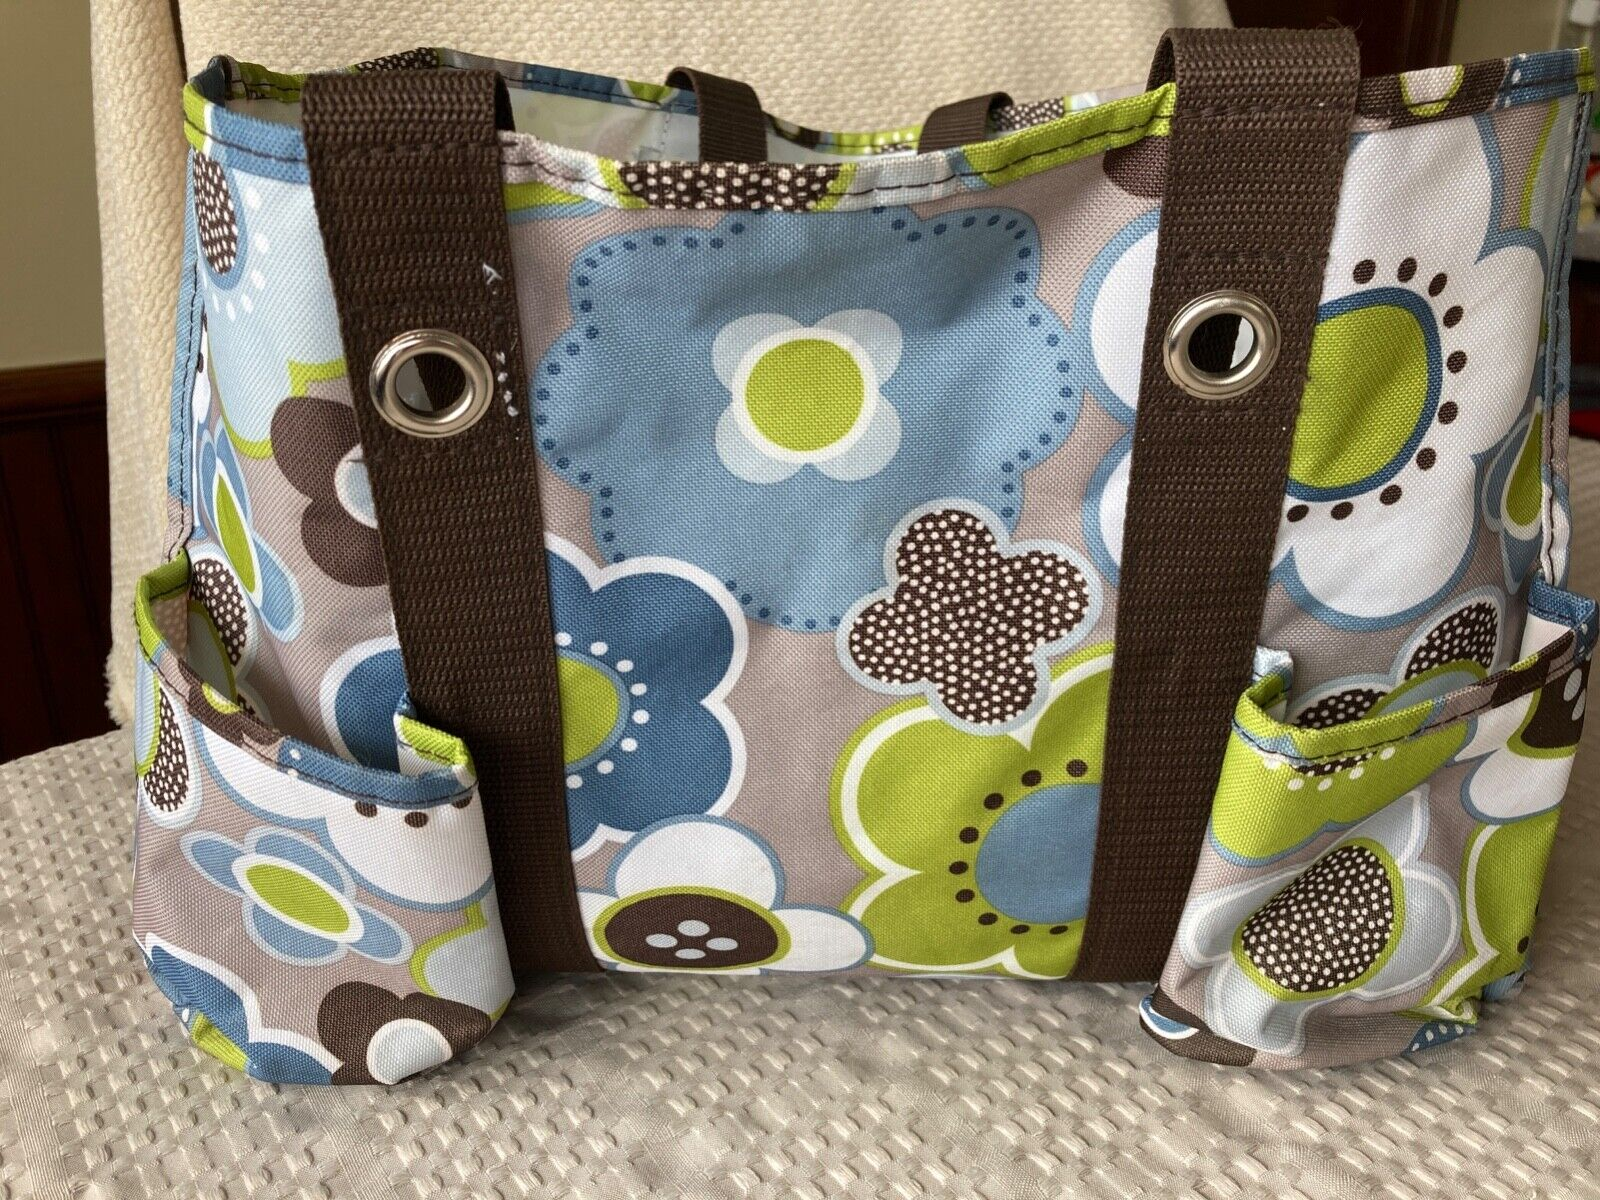 Carry All Tote By Thirty One Blue Green Brown Flowers - $4.99